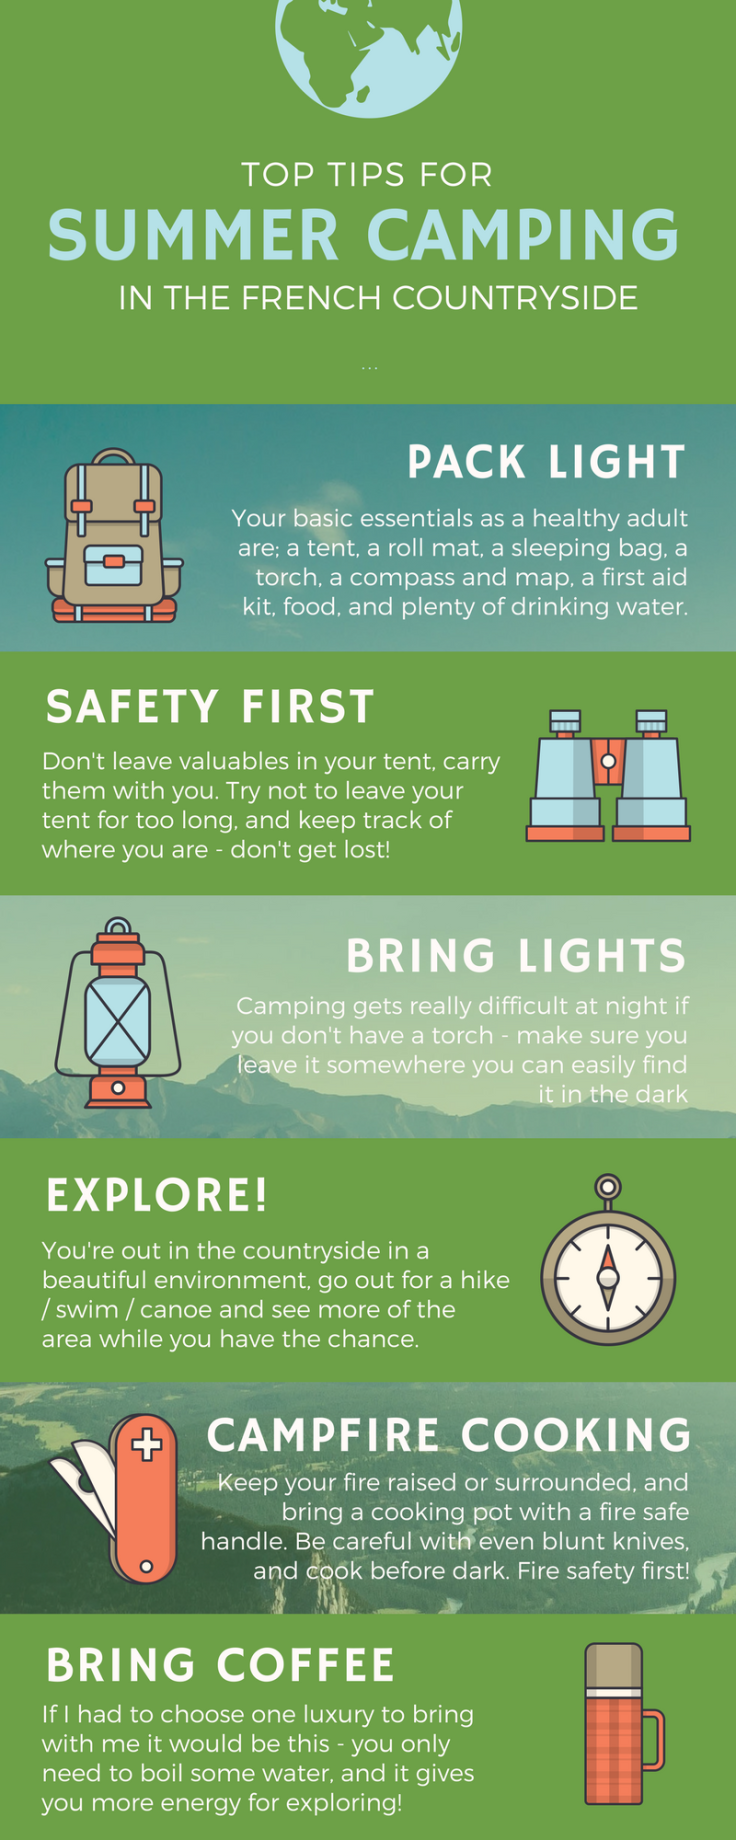 summer camping in the french countryside infographic